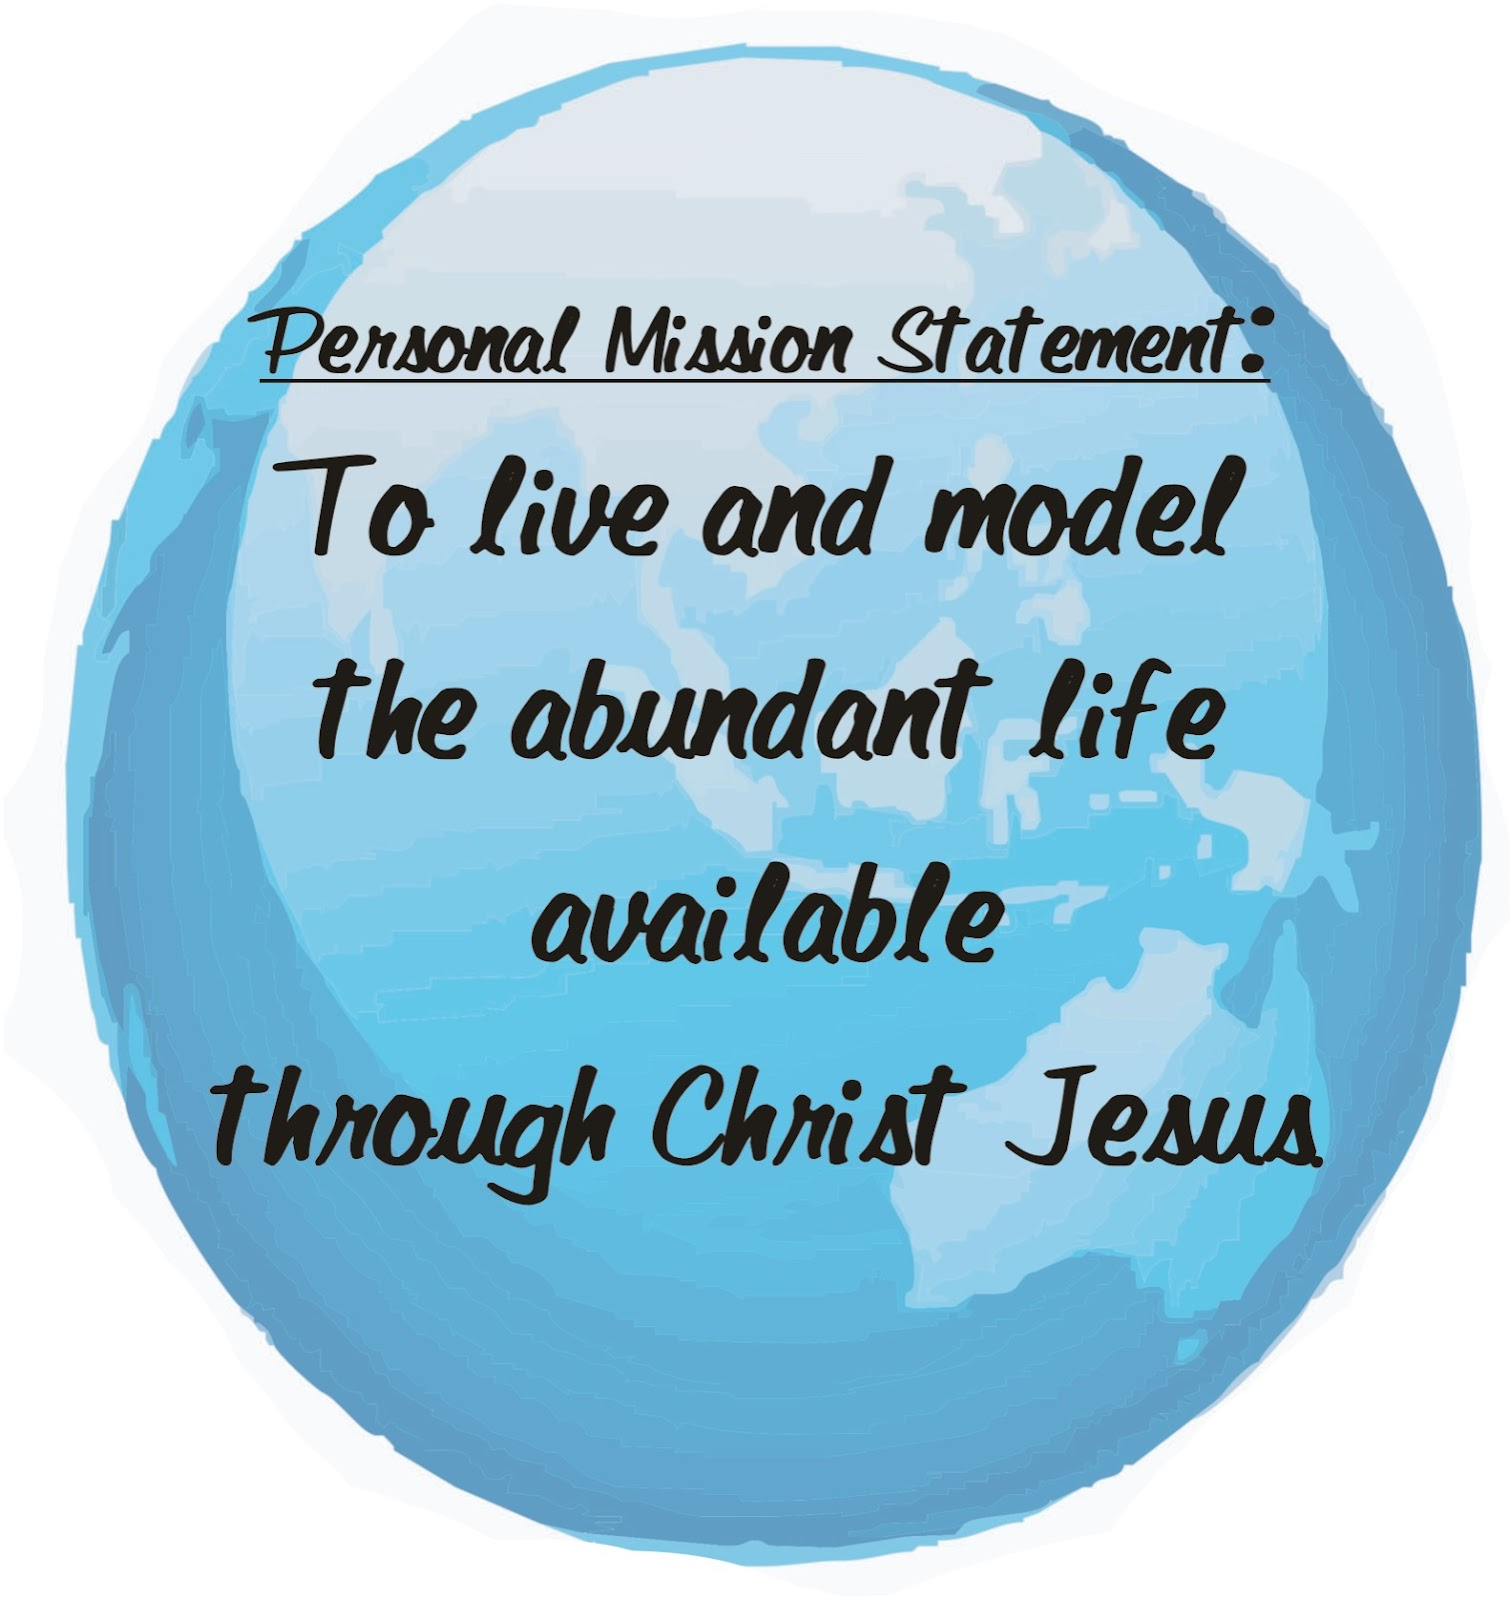 Small Group Mission Statement 75